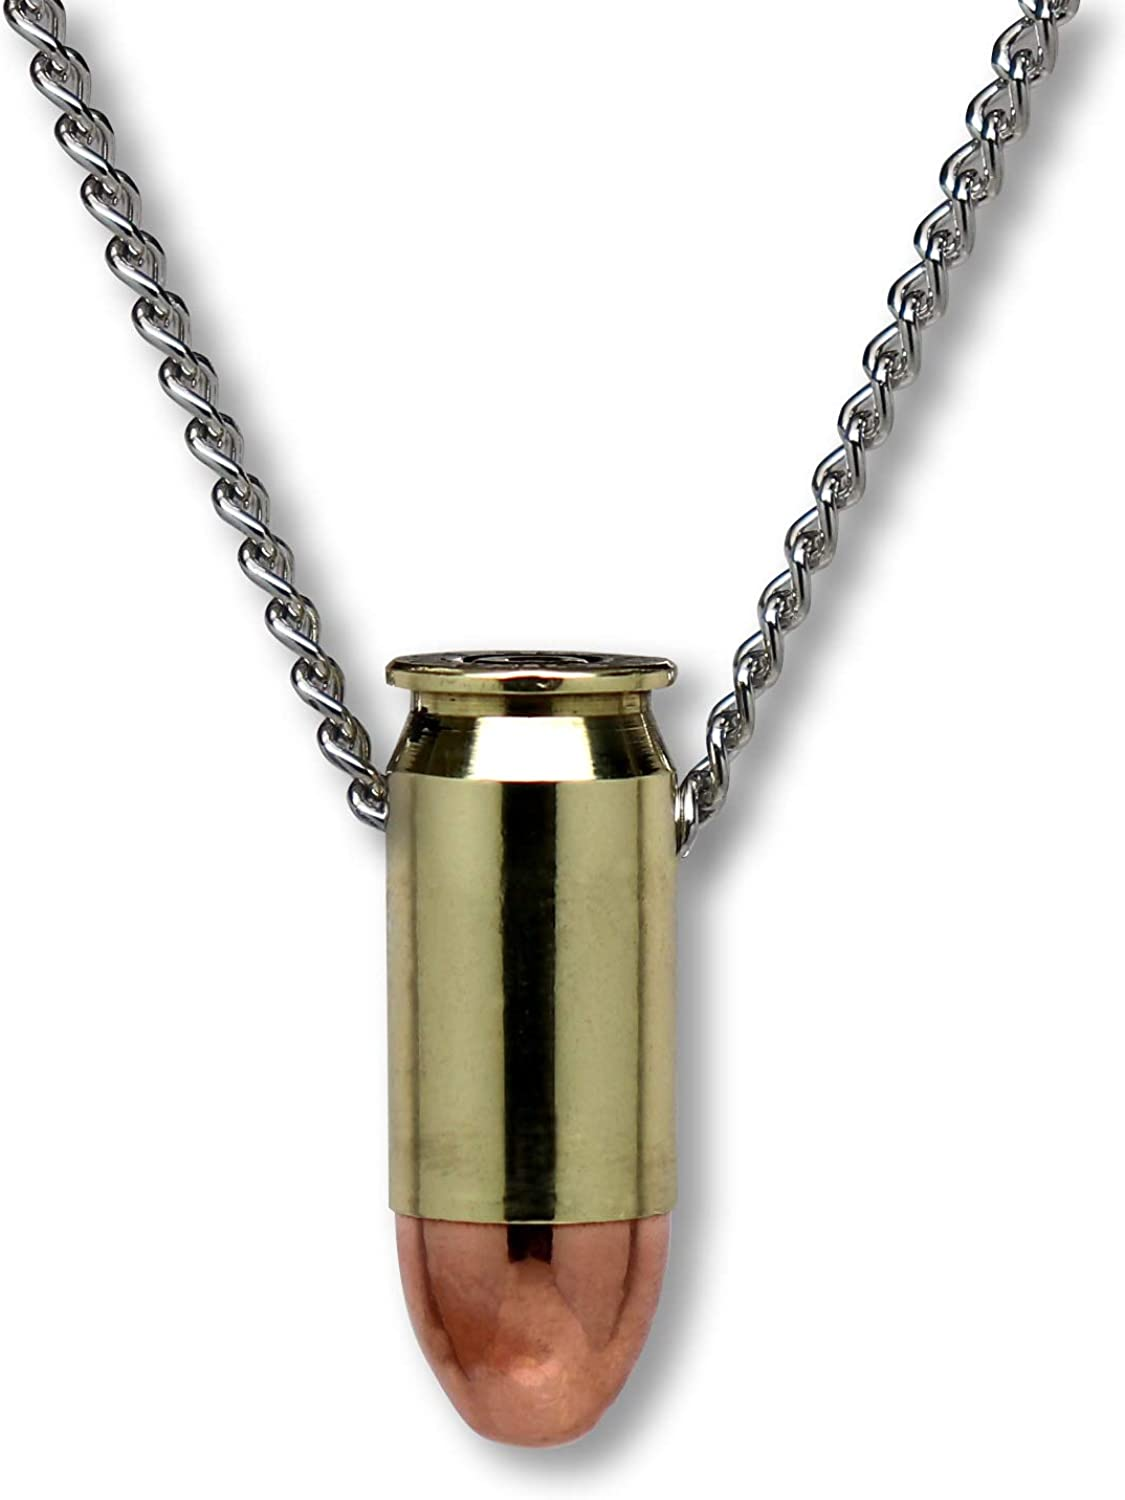 45 Caliber Bullet Necklace Hand Polished Brass and Copper Finish 20 Inch Neck Chain